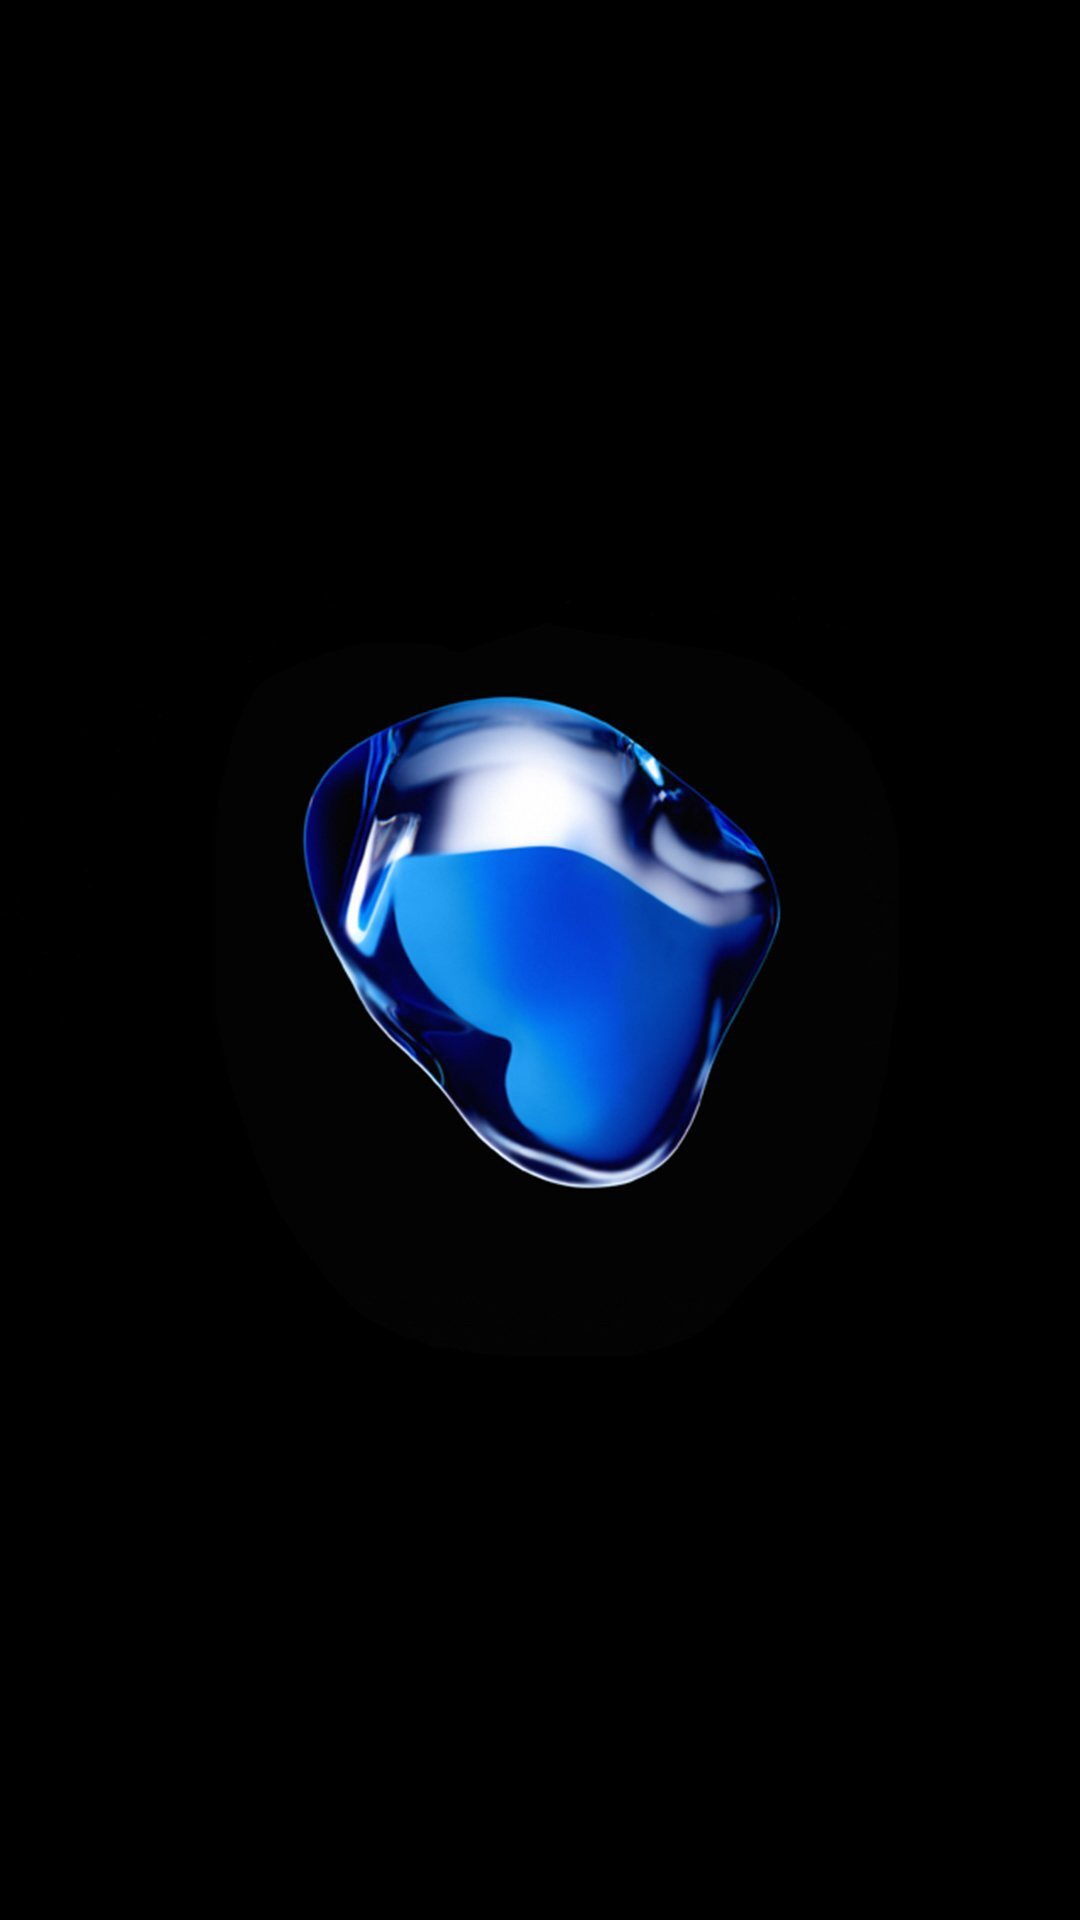 The Blue blob wallpaper in the iPhone 7 ads - iPhone, iPad, iPod ...